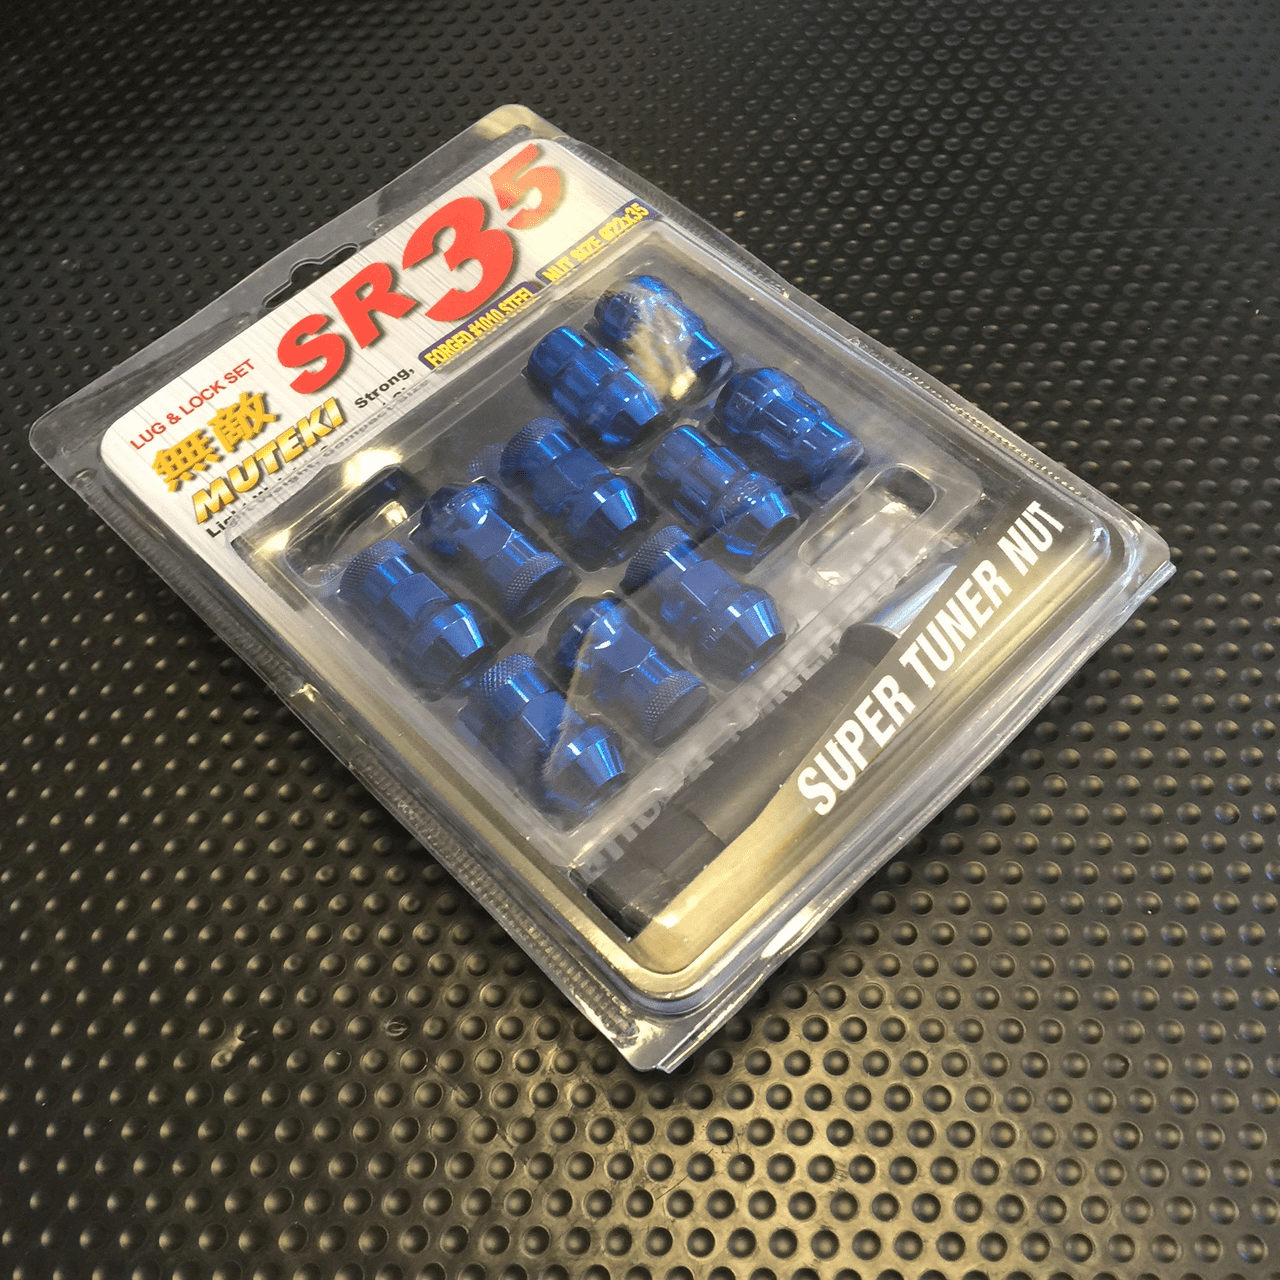 Muteki SR35 Lug Nuts Chrome Blue Closed Ended 32926UP 12x1.50mm FREE SHIPPING Pre-order